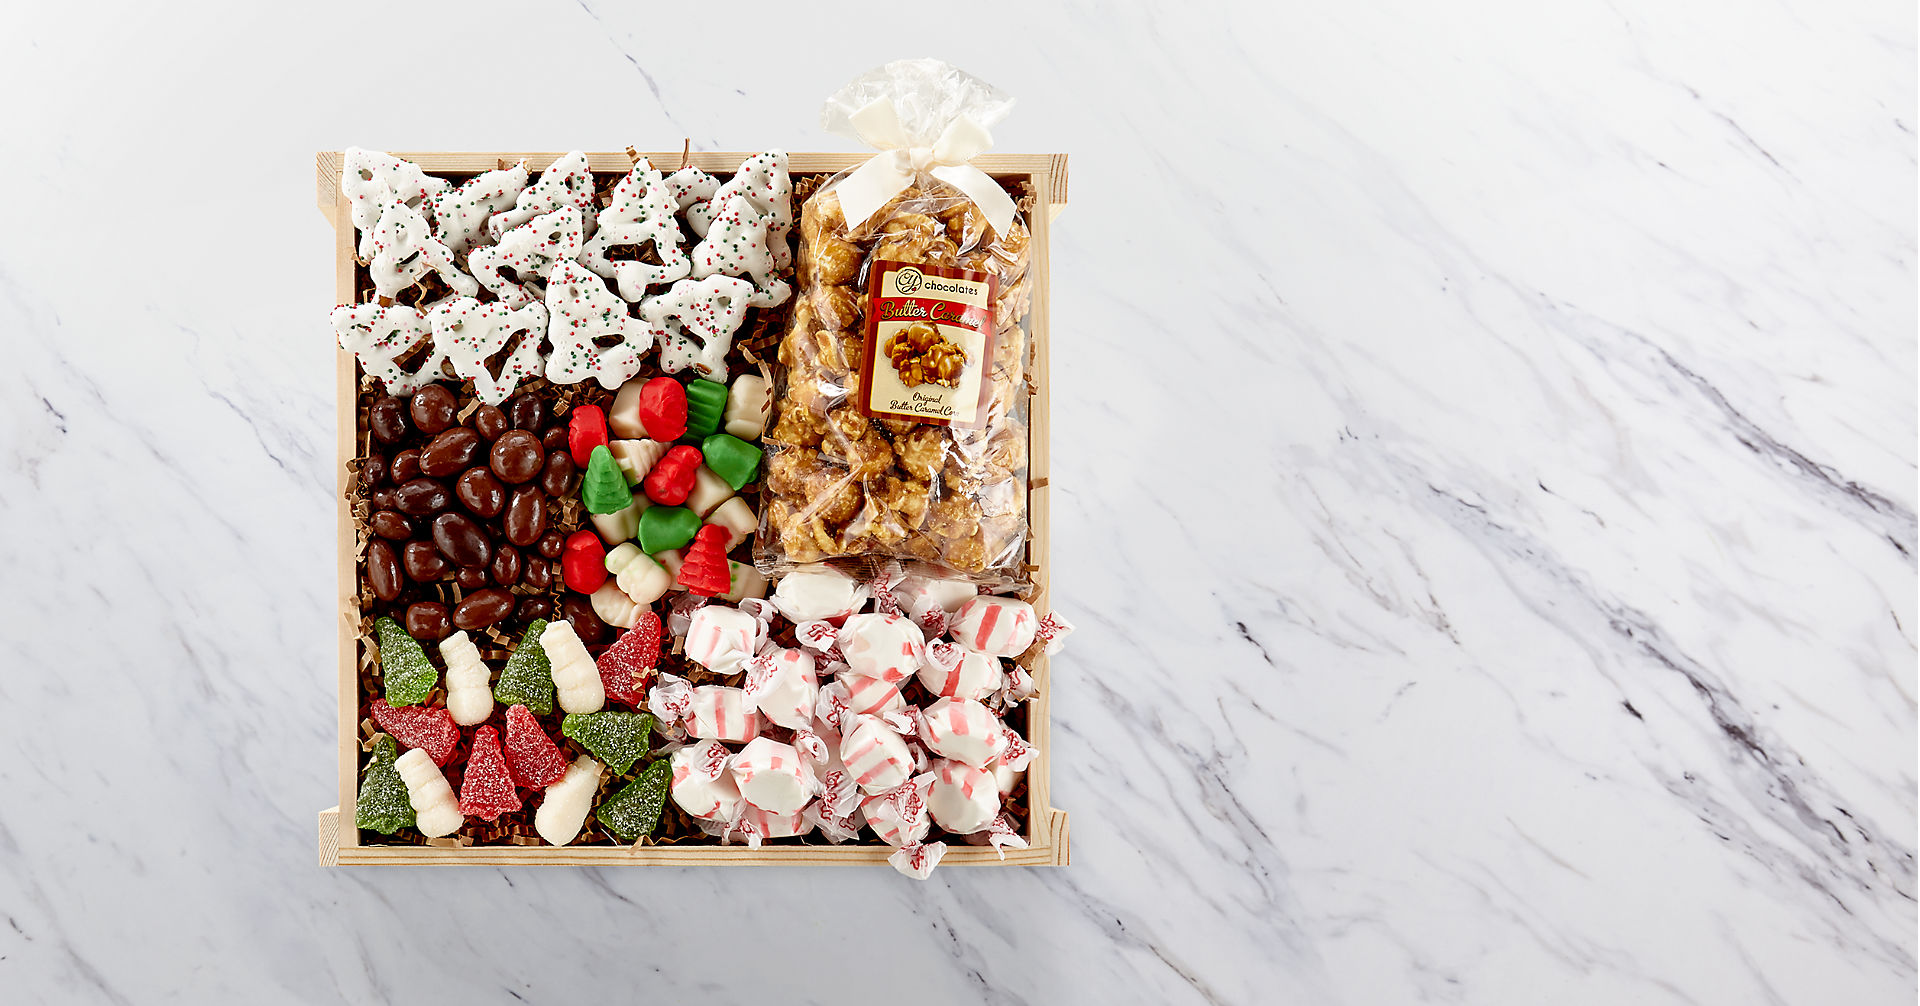 Holiday Delights Chocolate & Sweets Gourmet Gift Basket - GOOD - Image 2 Of 2